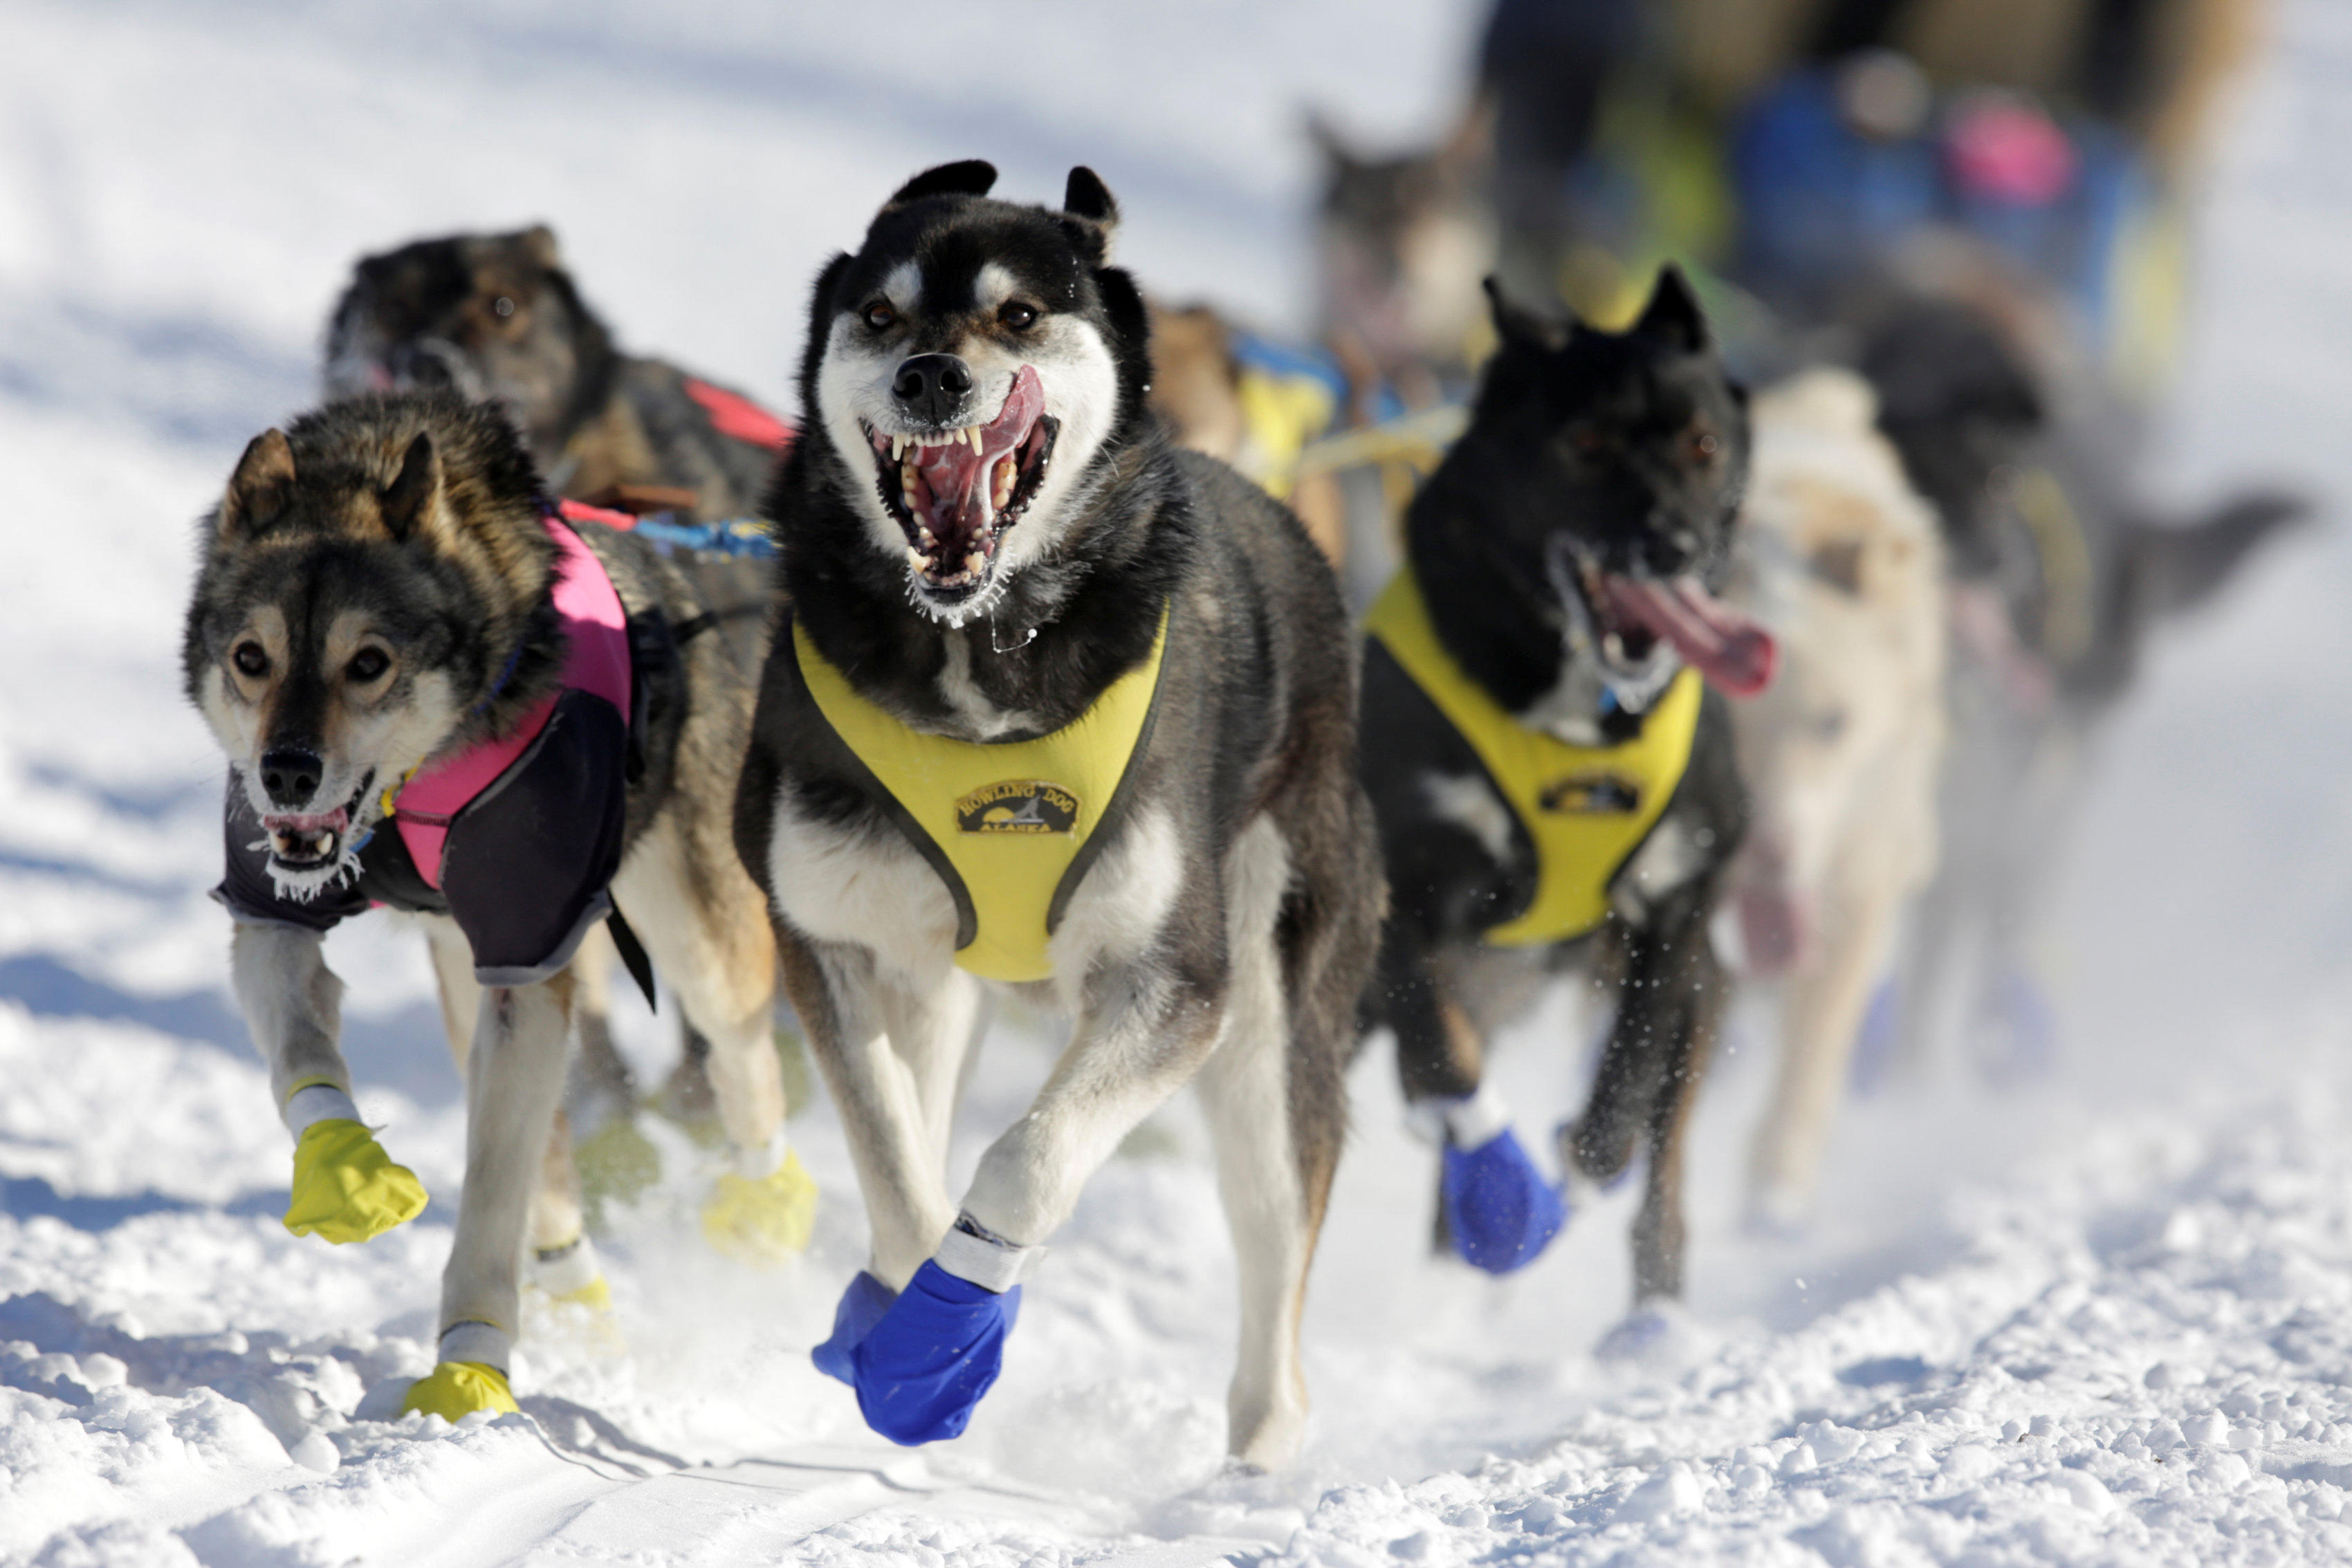 Iditarod dogs test positive for prohibited opioids, race officials say